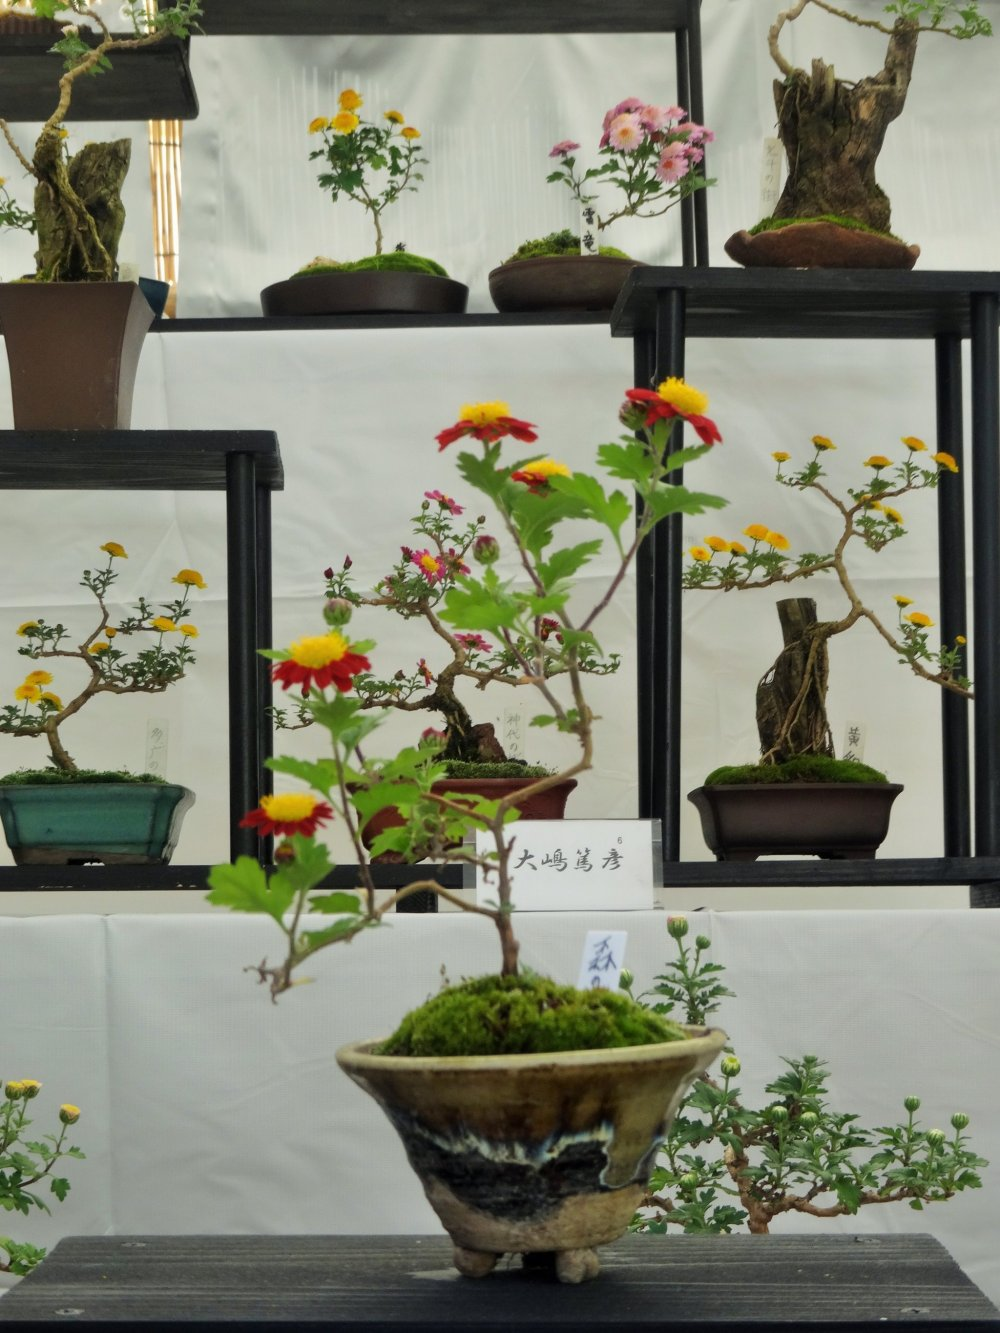 The mums have been carefully tended in the typical bonsai style